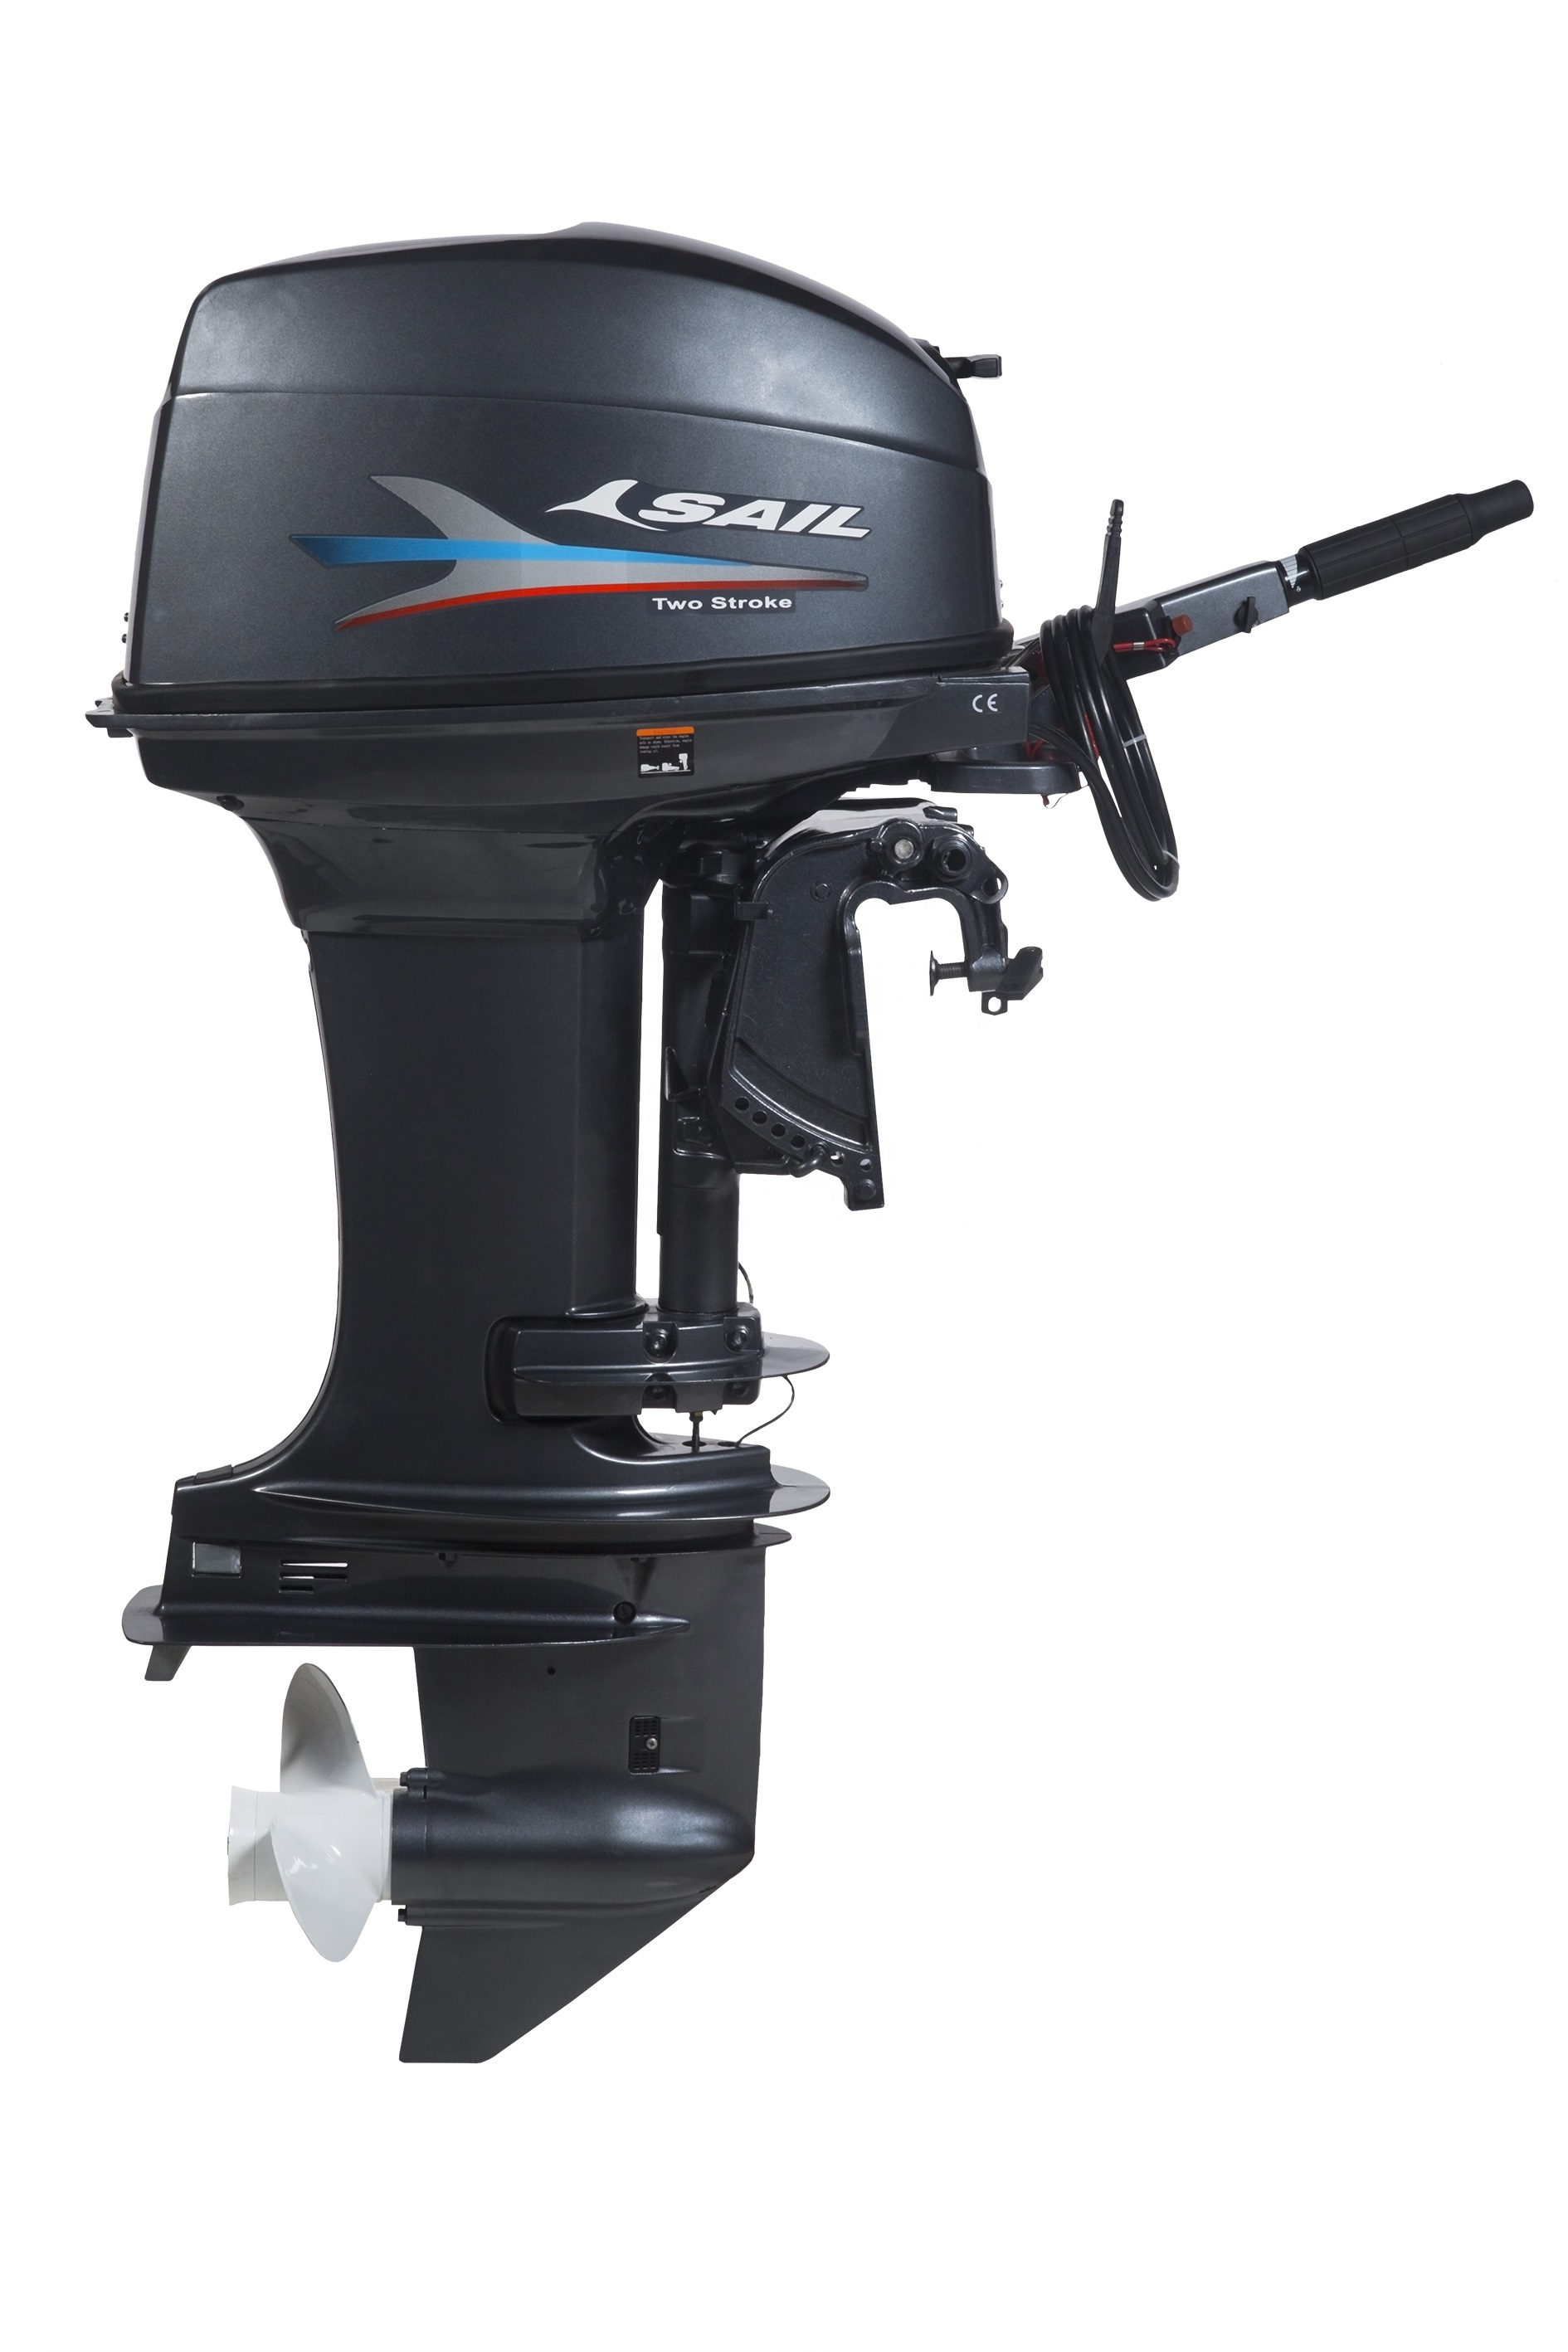 SAIL 2 stroke 40HP outboard motor / outboard engine / boat engine